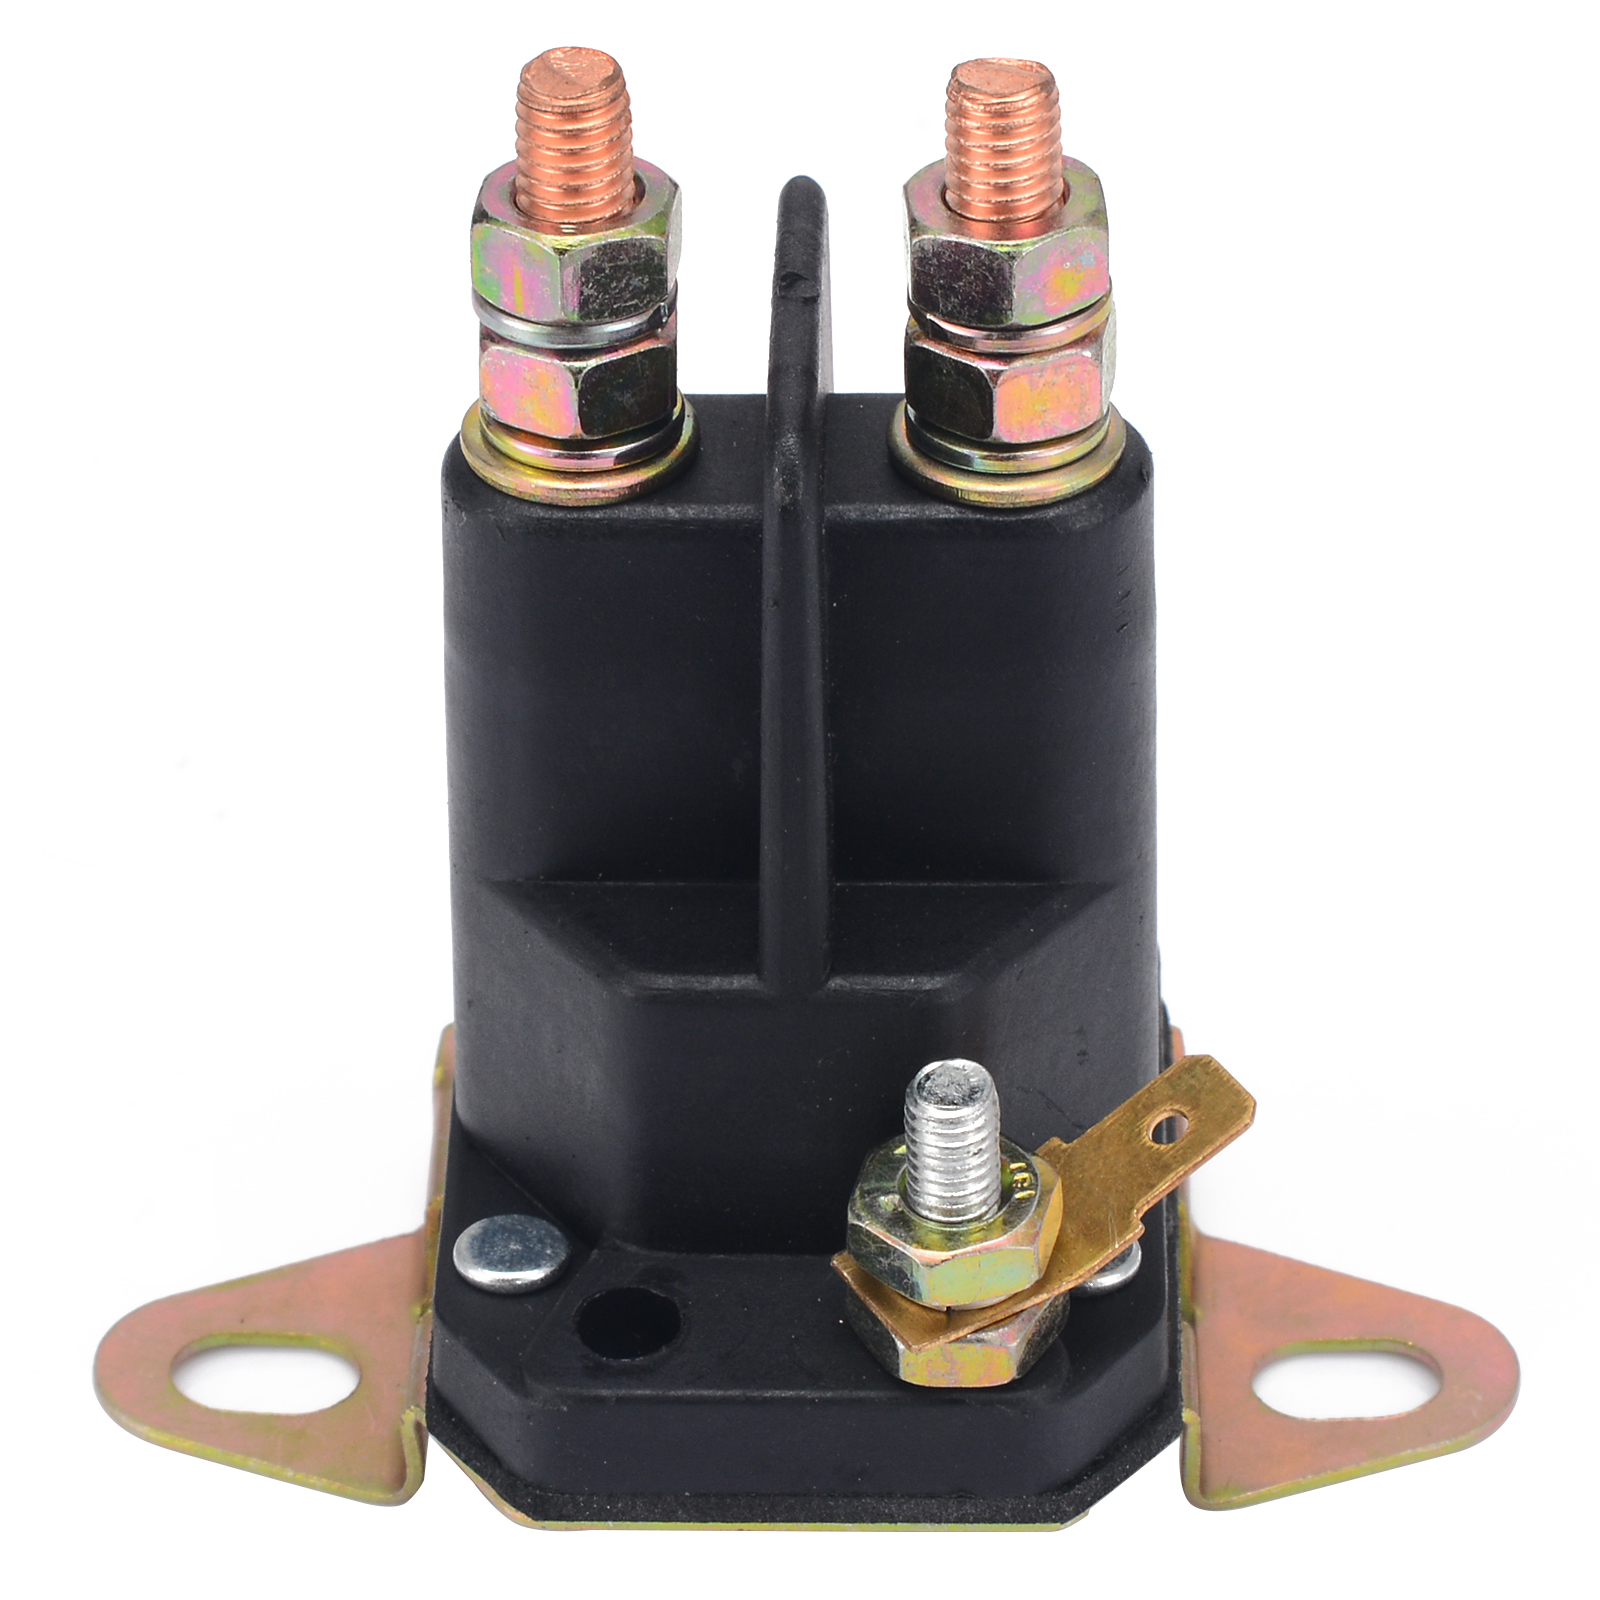 New Starter Relay Solenoid Switch For Harley Davidson – name